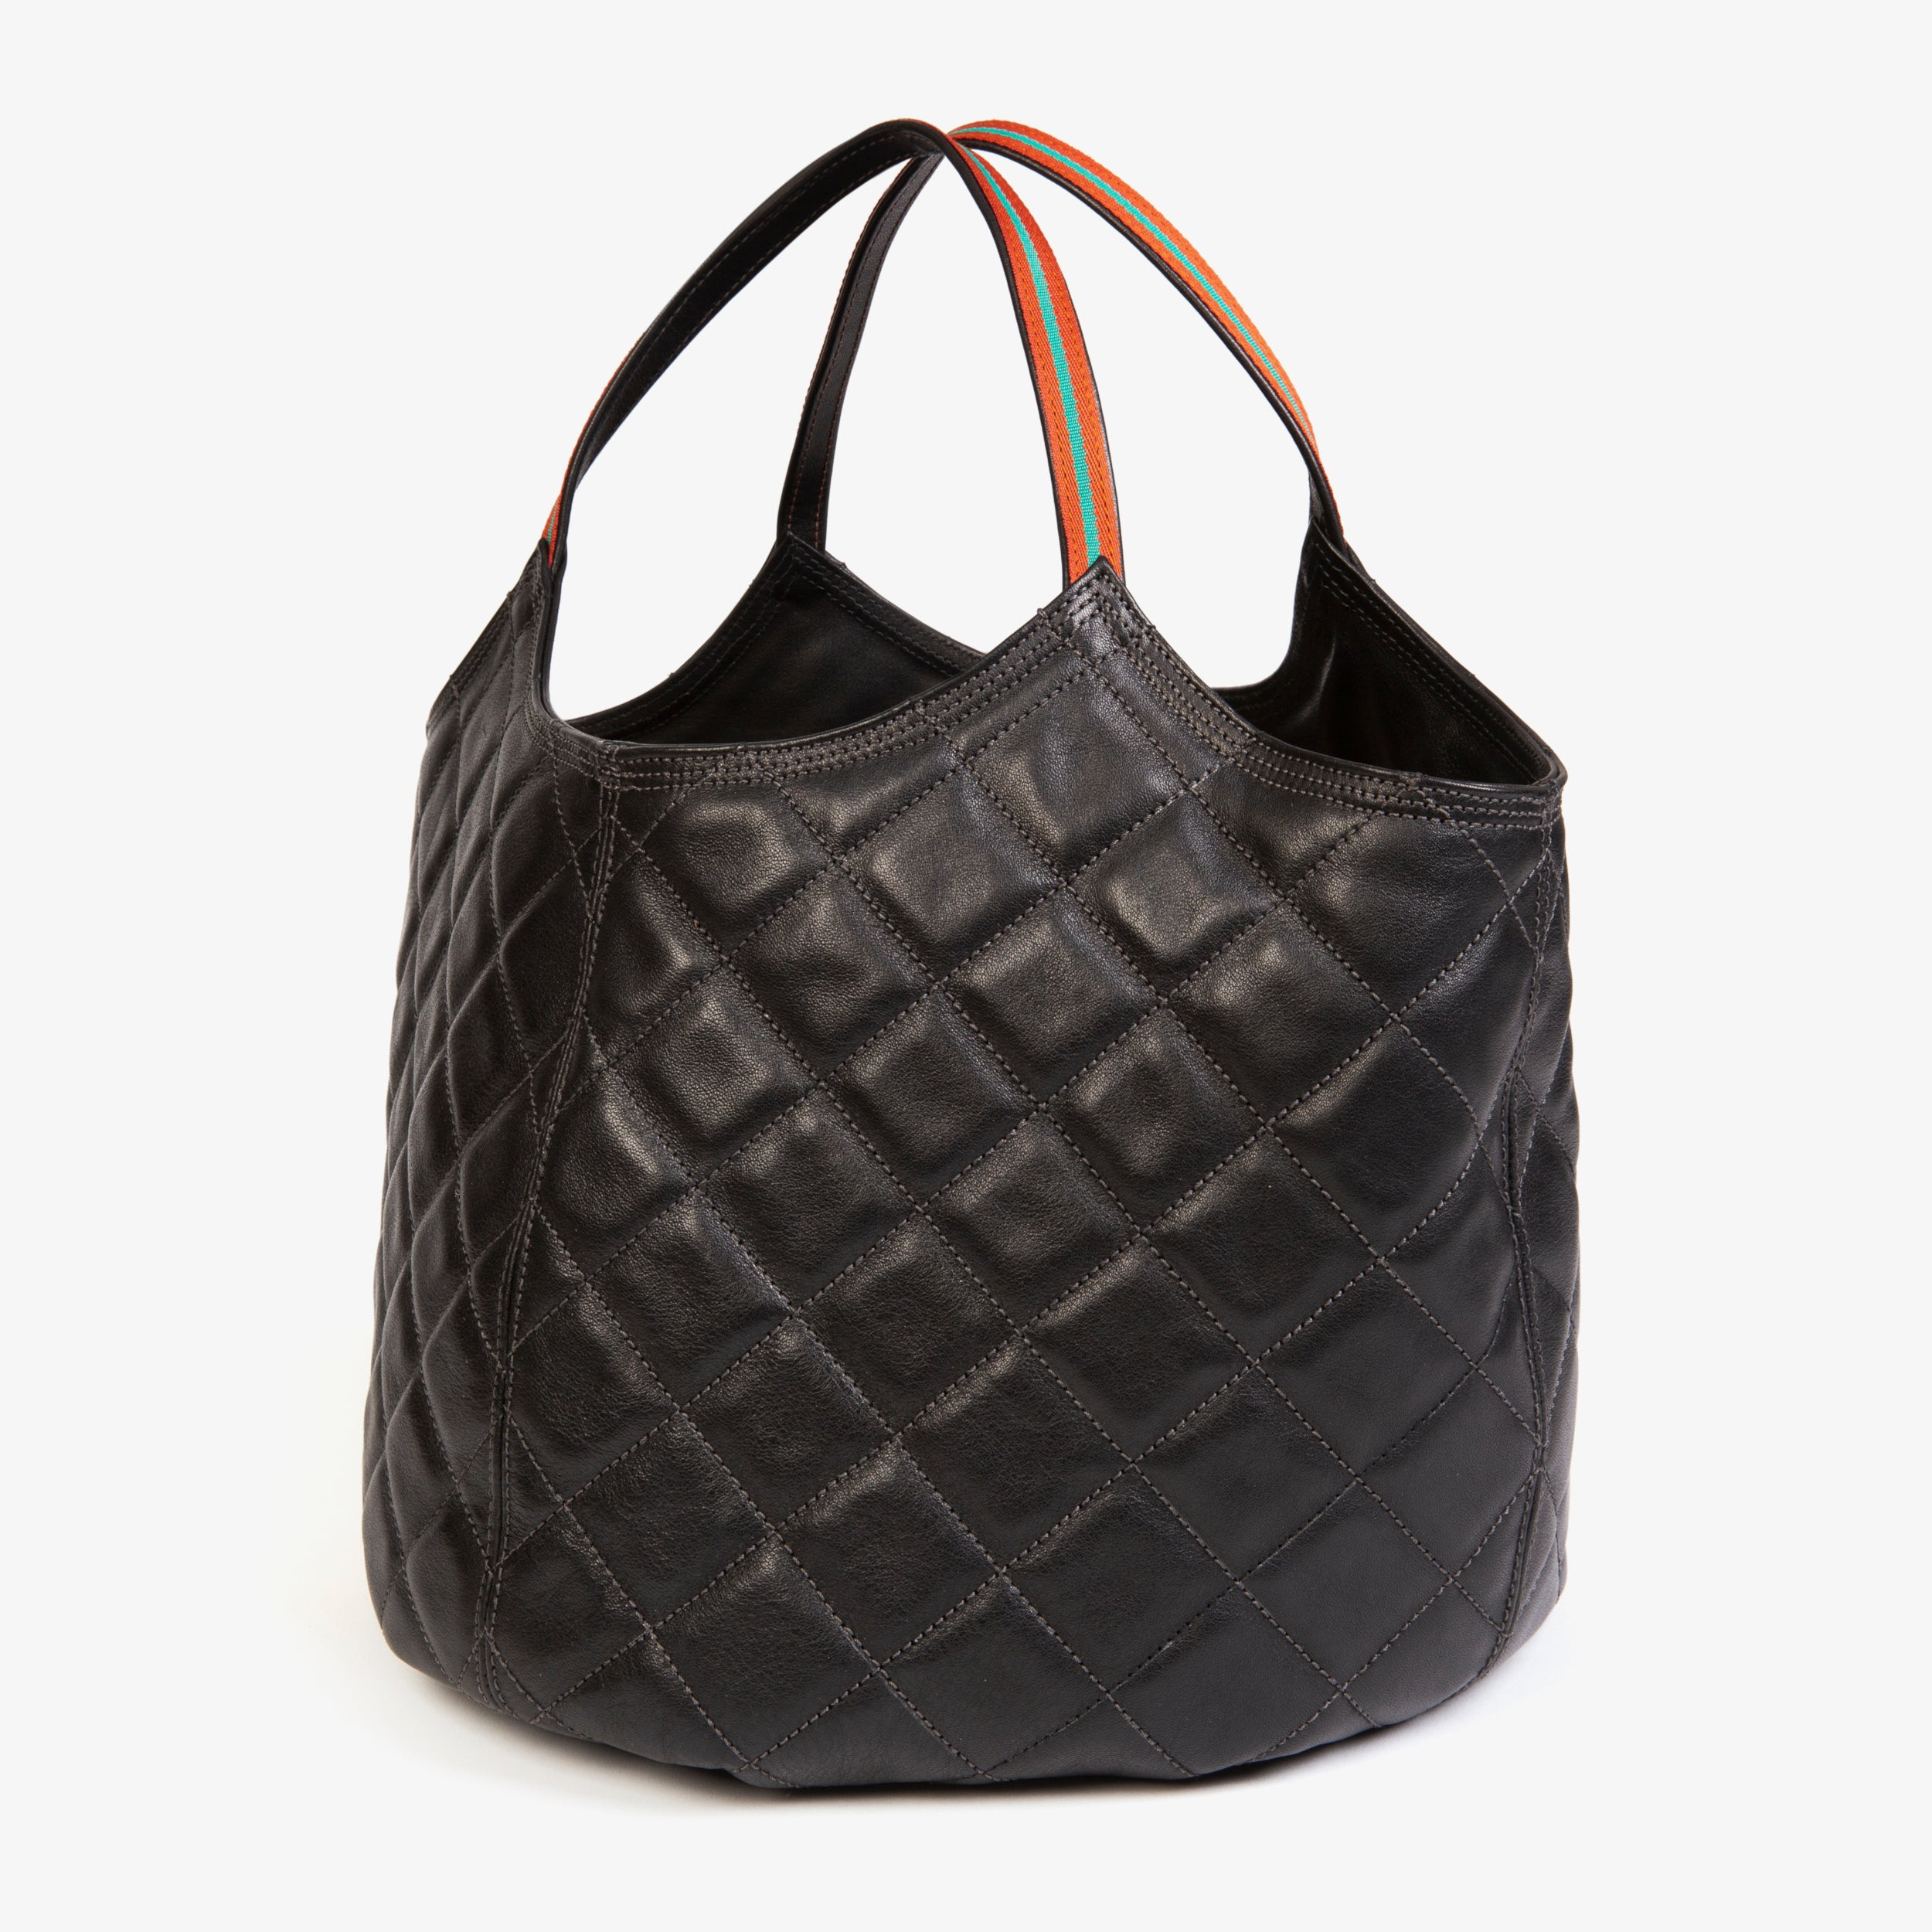 Mini Quilted Pillow Bag Hetre Alresford Boutique PENELOPE CHILVERS